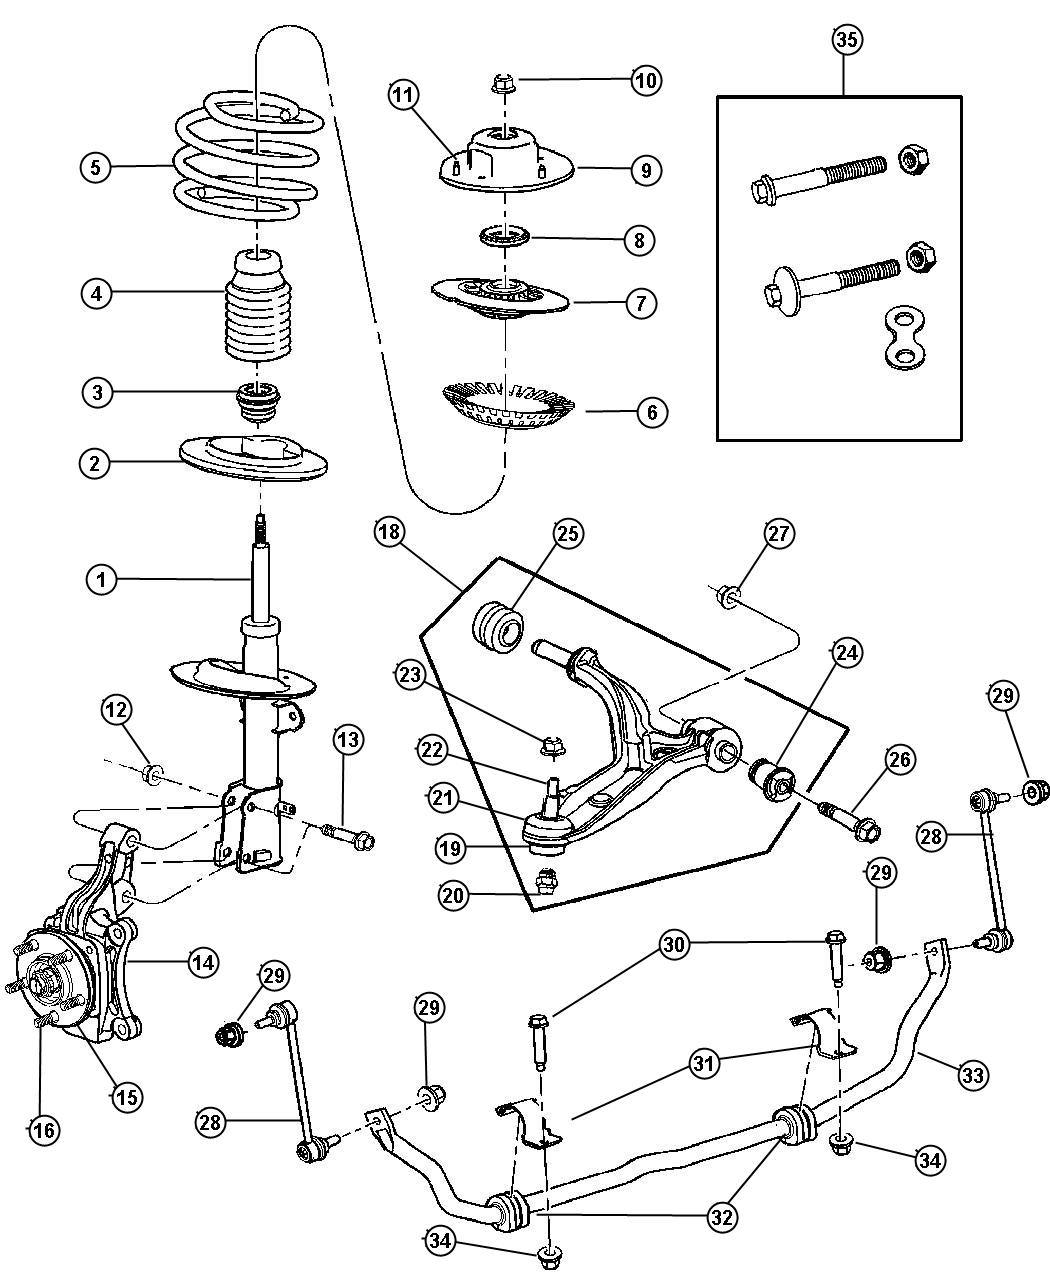 07 Dodge Grand Caravan Radio Wiring Diagrams Wire Diagram 2002 Chrysler Voyager Free Pictu Library Rh 37 Dreamnode Online 2001 2006